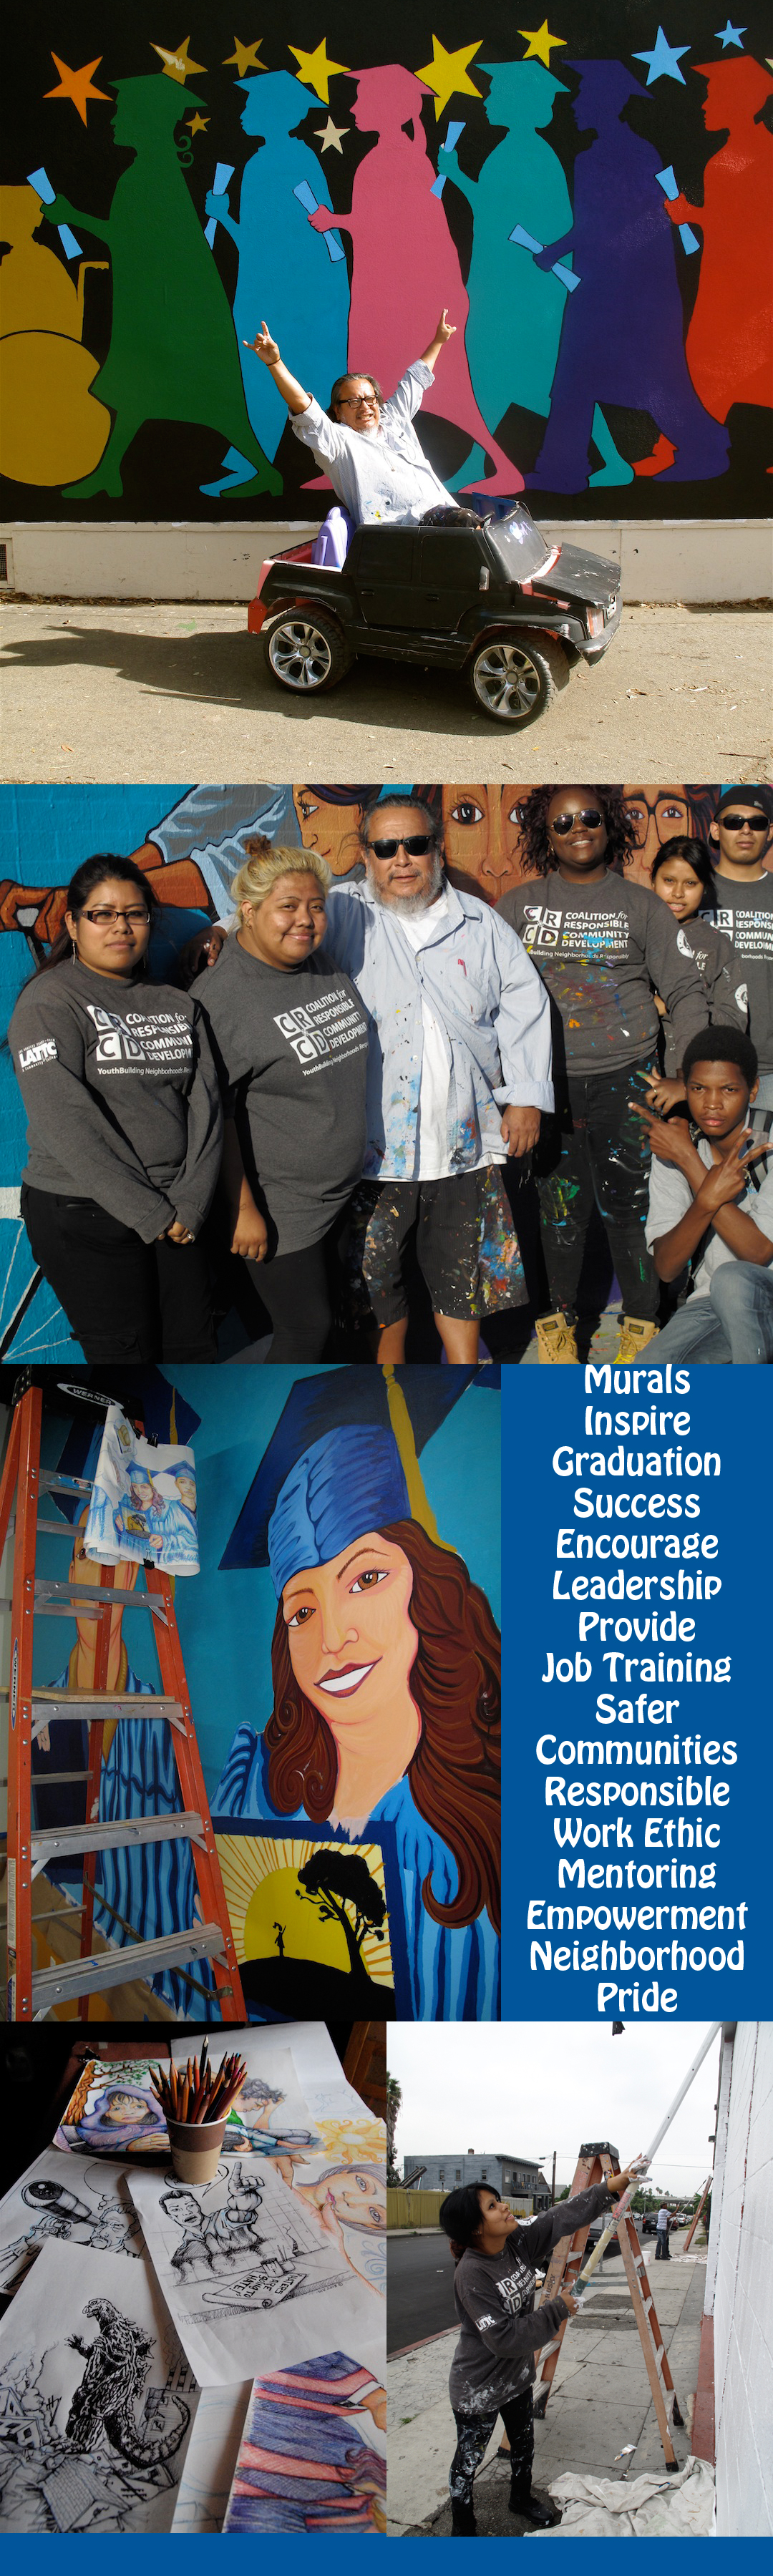 Contact Manny Velazquez to begin a community mural project!